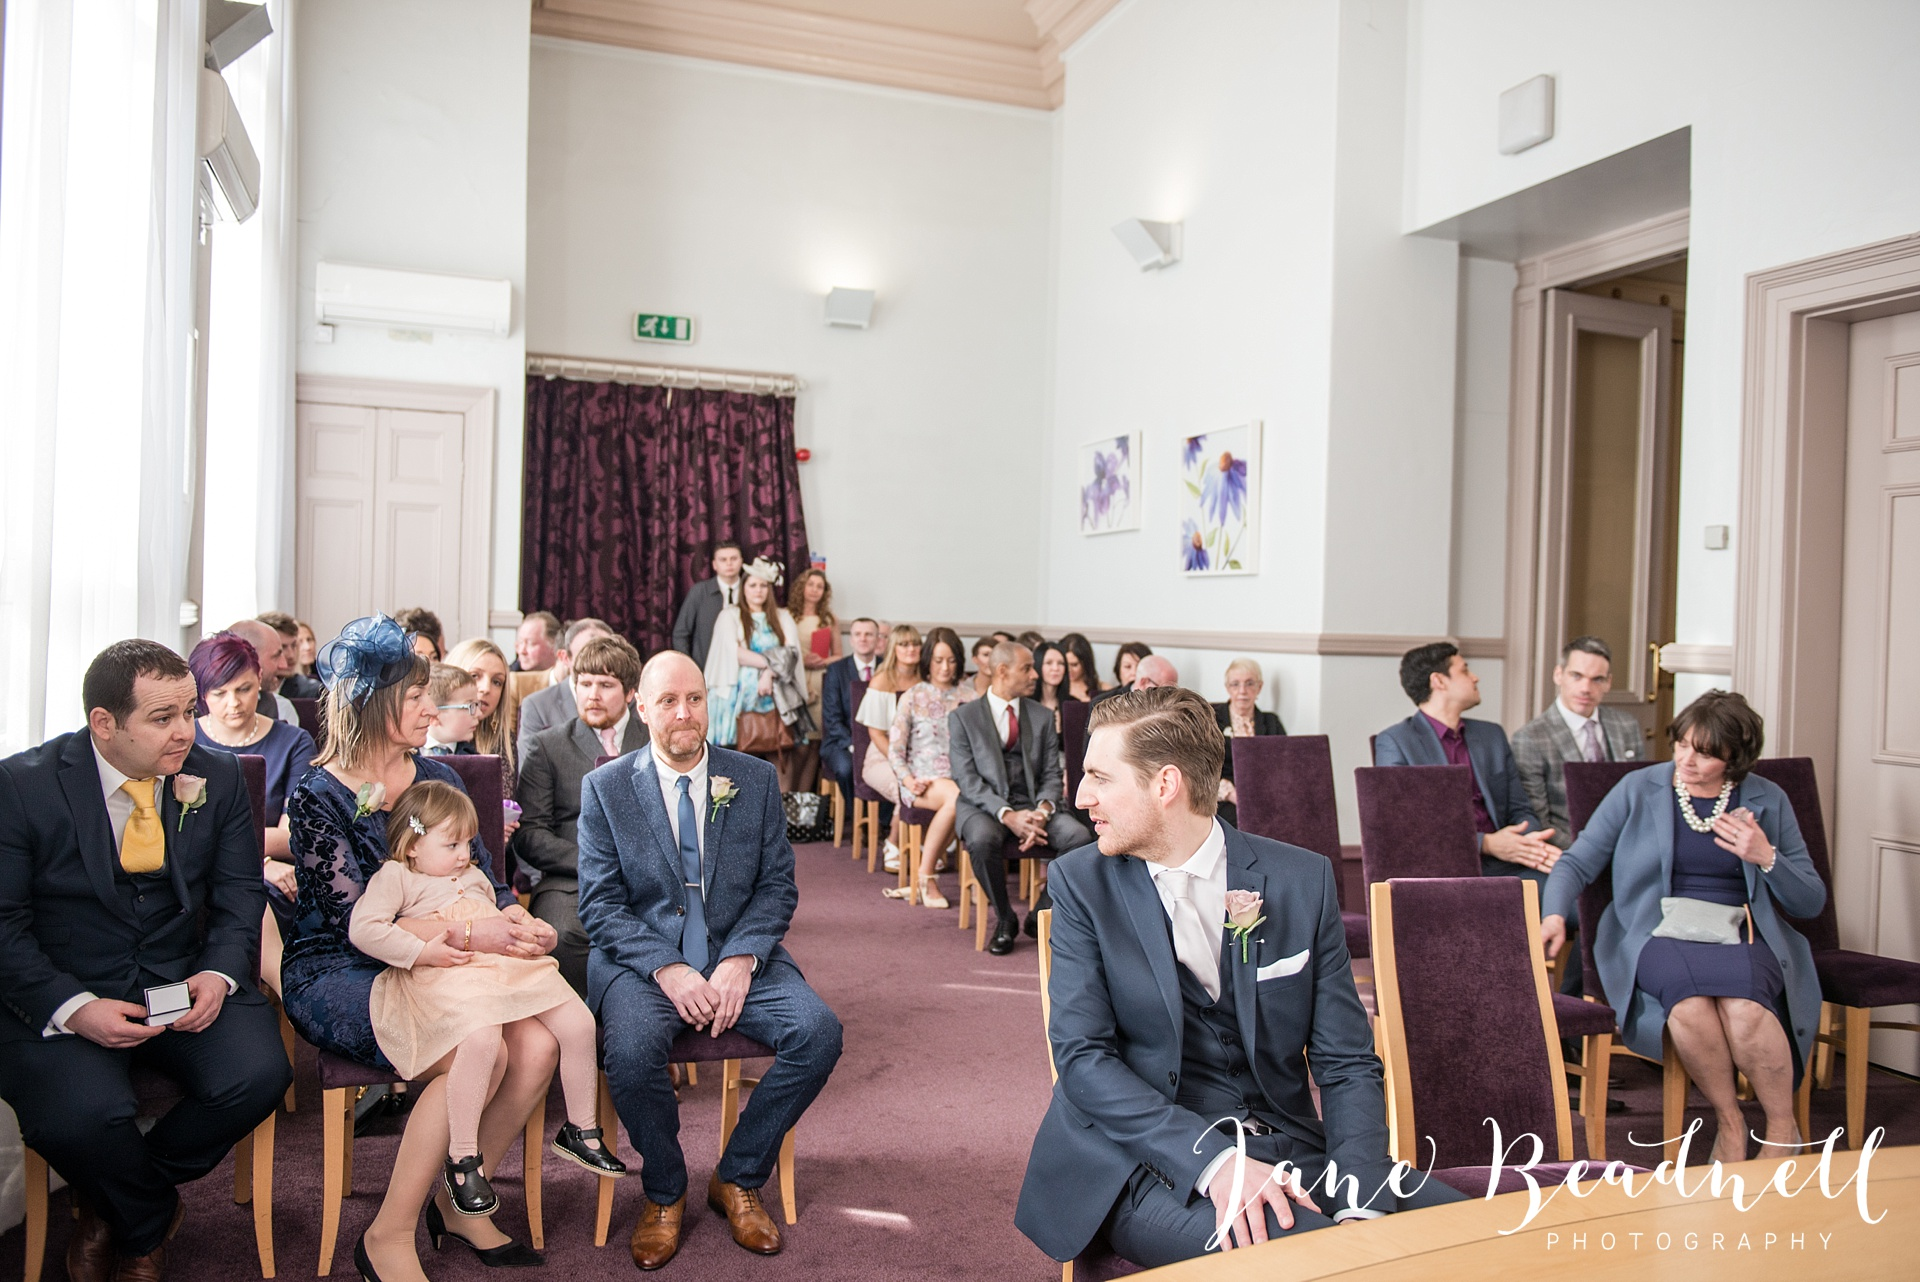 Wedding photography Cross Keys Leeds Wedding Jane Beadnell Photography_0024